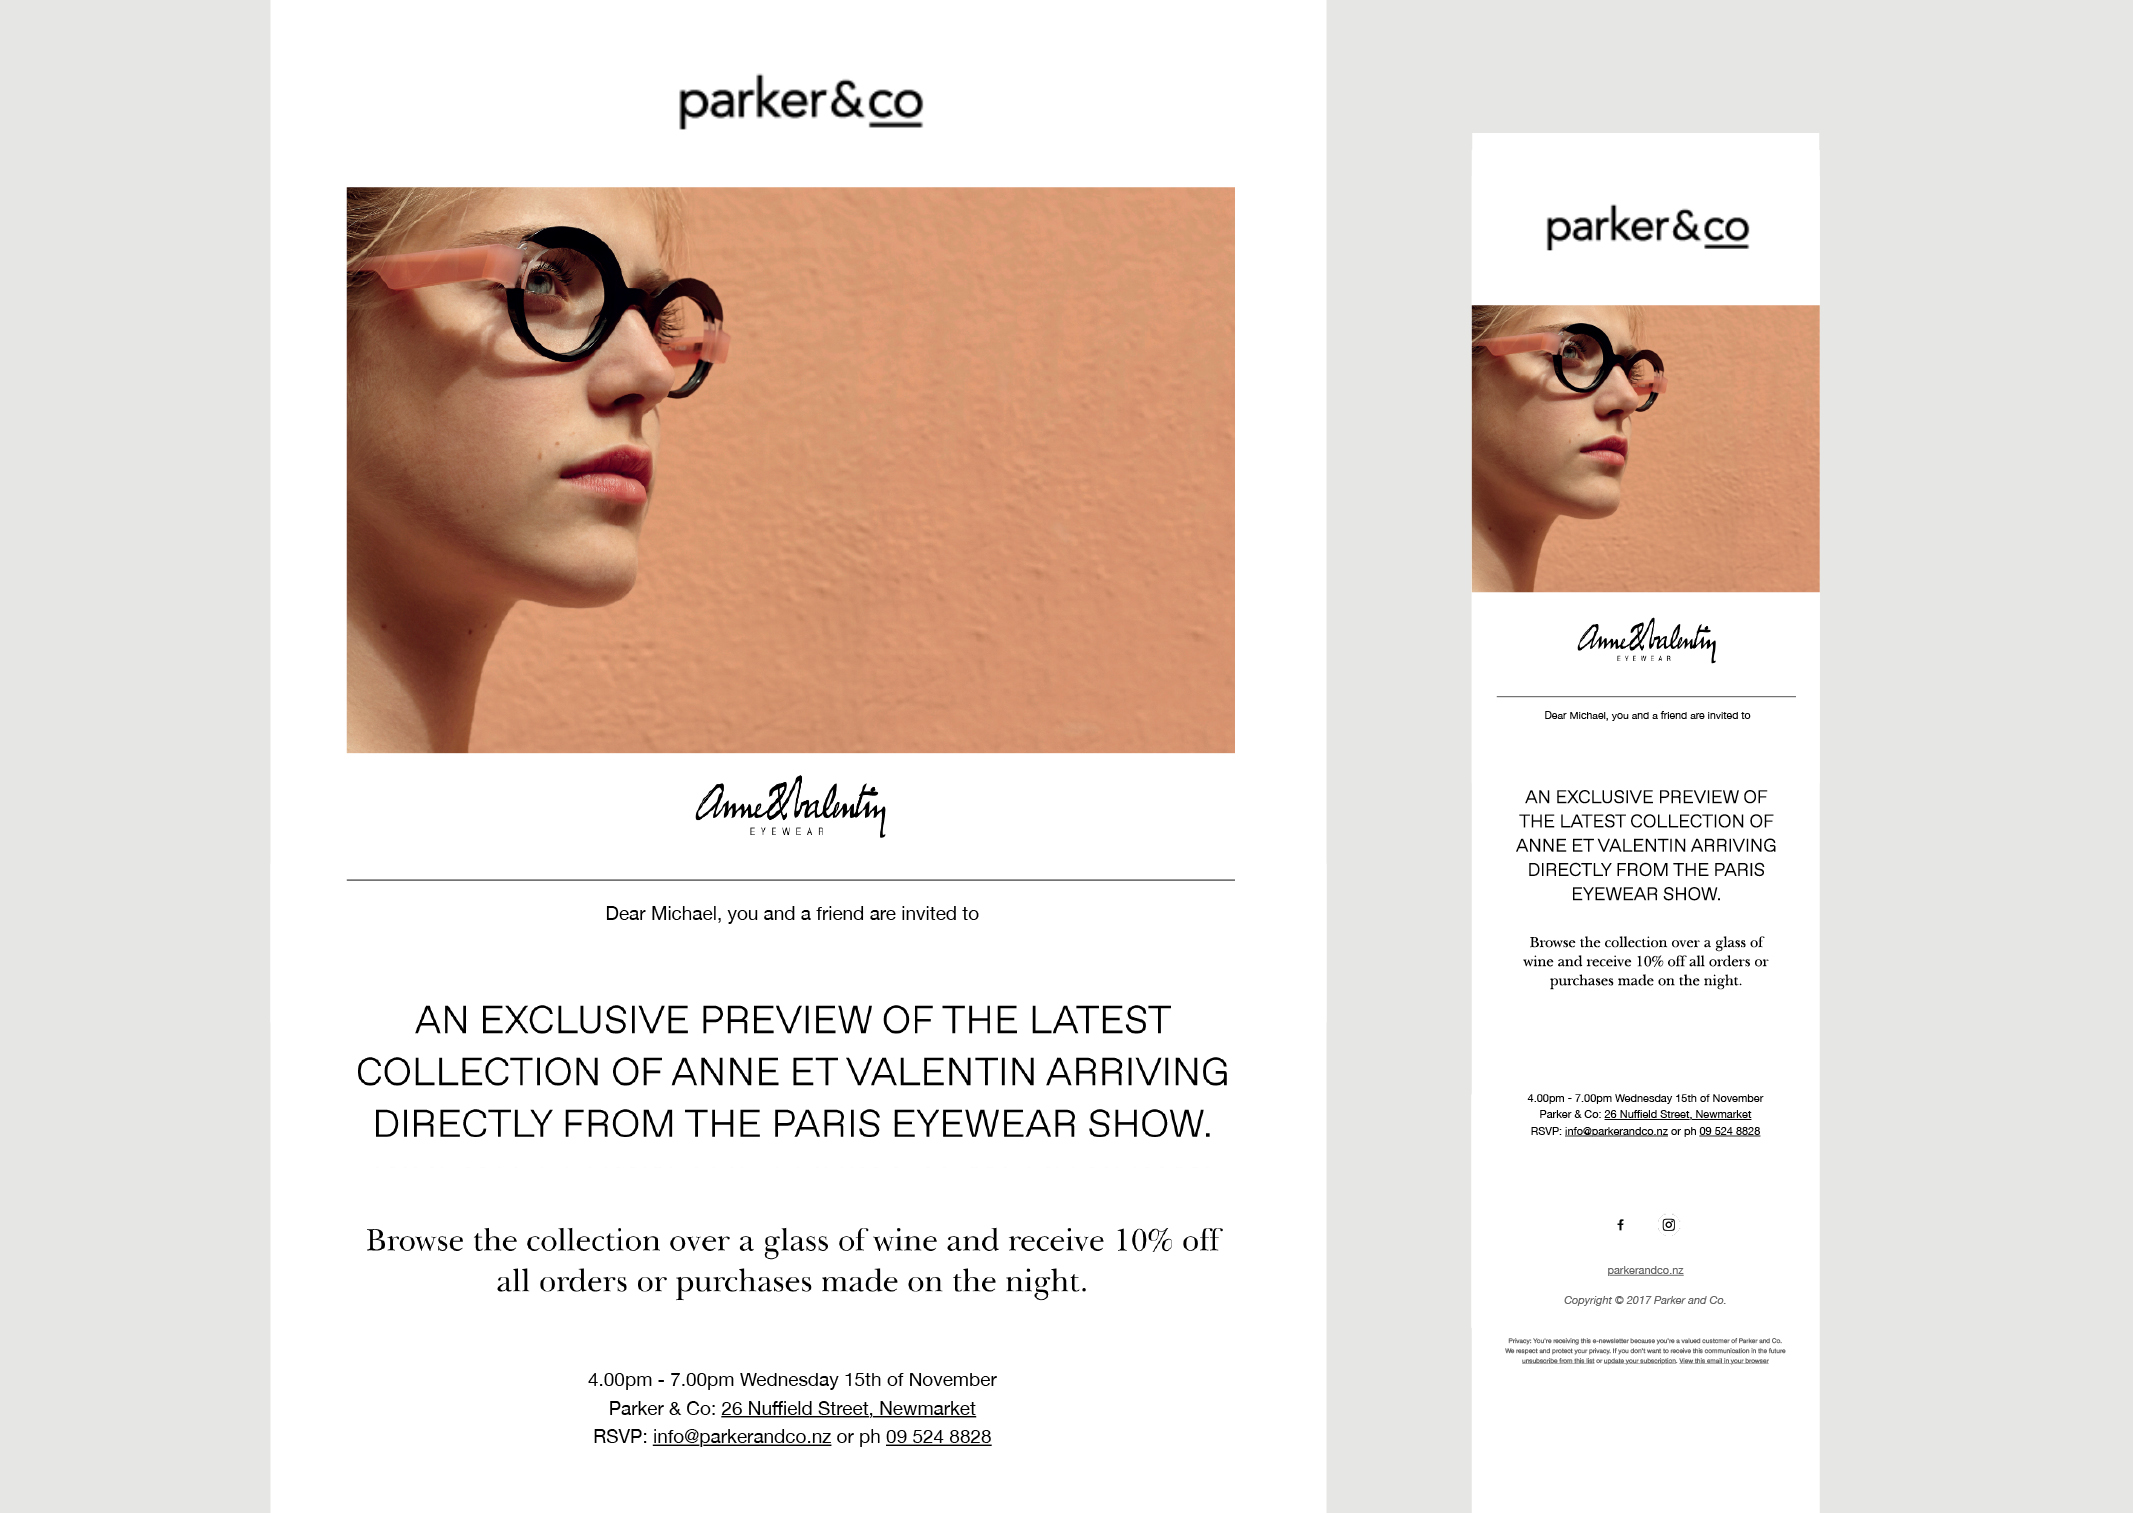 Parker & Co EDM Anne et Valentin Eyewear exclusive preview – desktop and mobile views